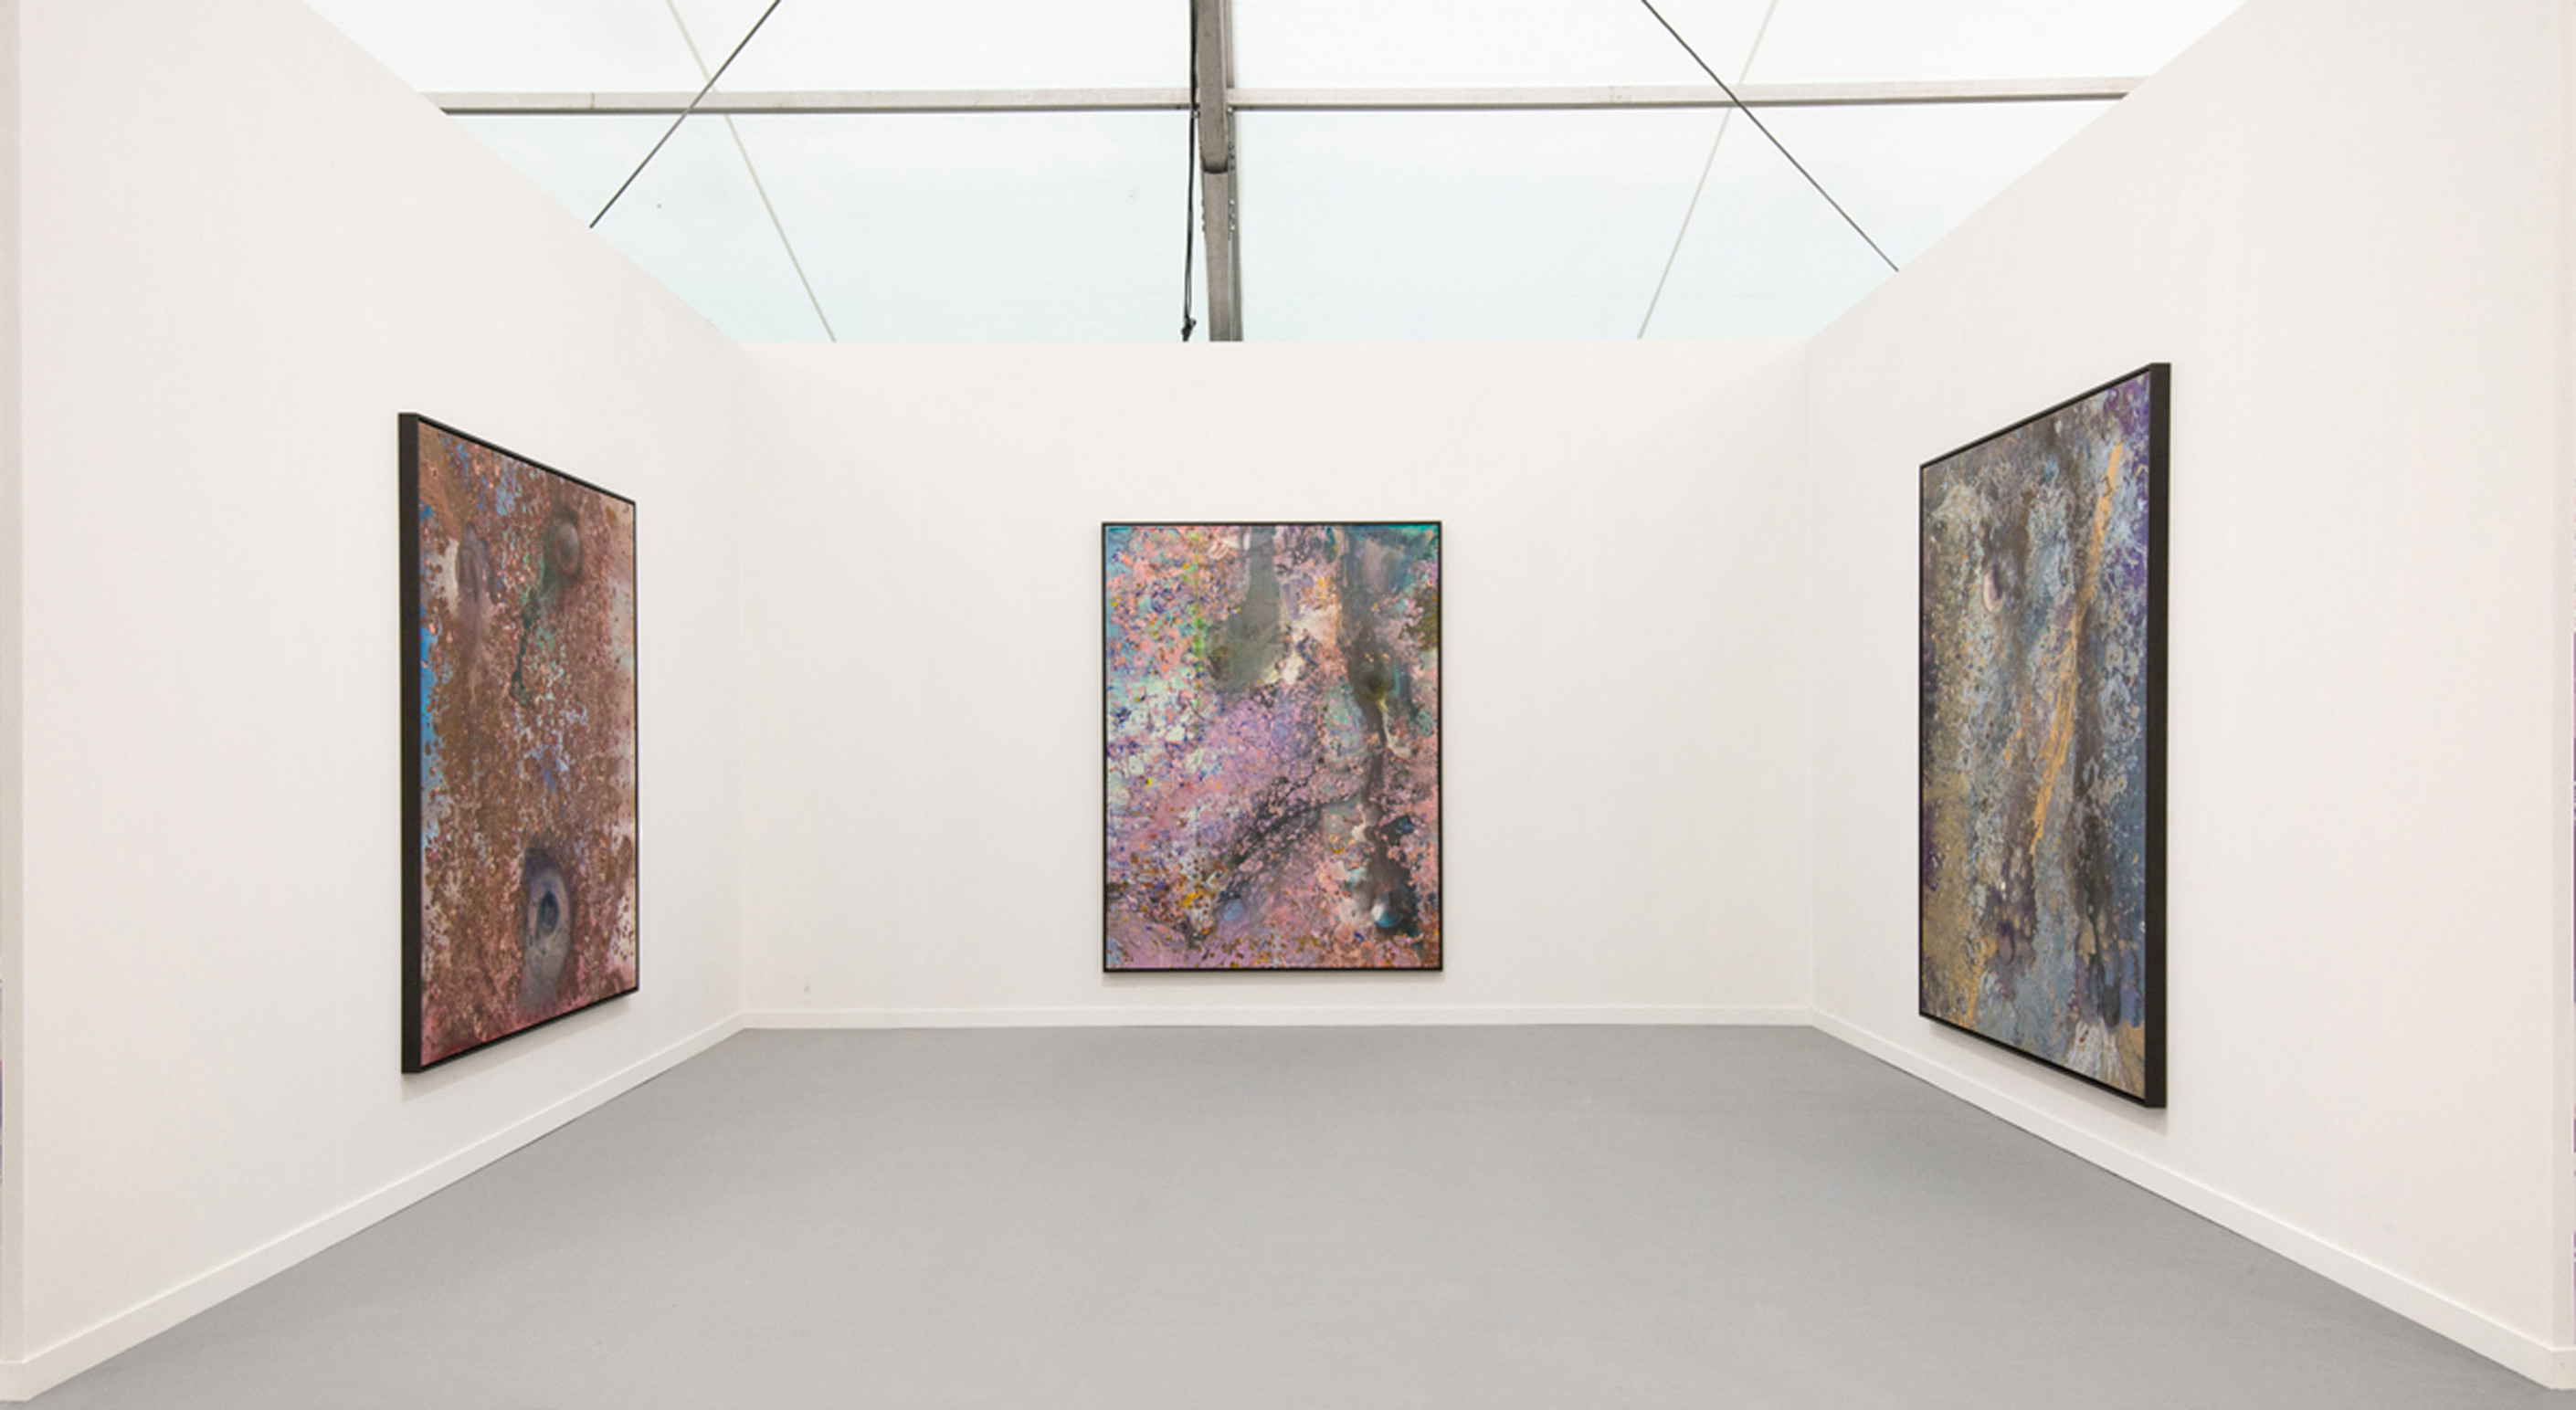 Installation view, Hales Gallery at Frieze Art Fair New York | Booth D26, 5 - 8 May 2016